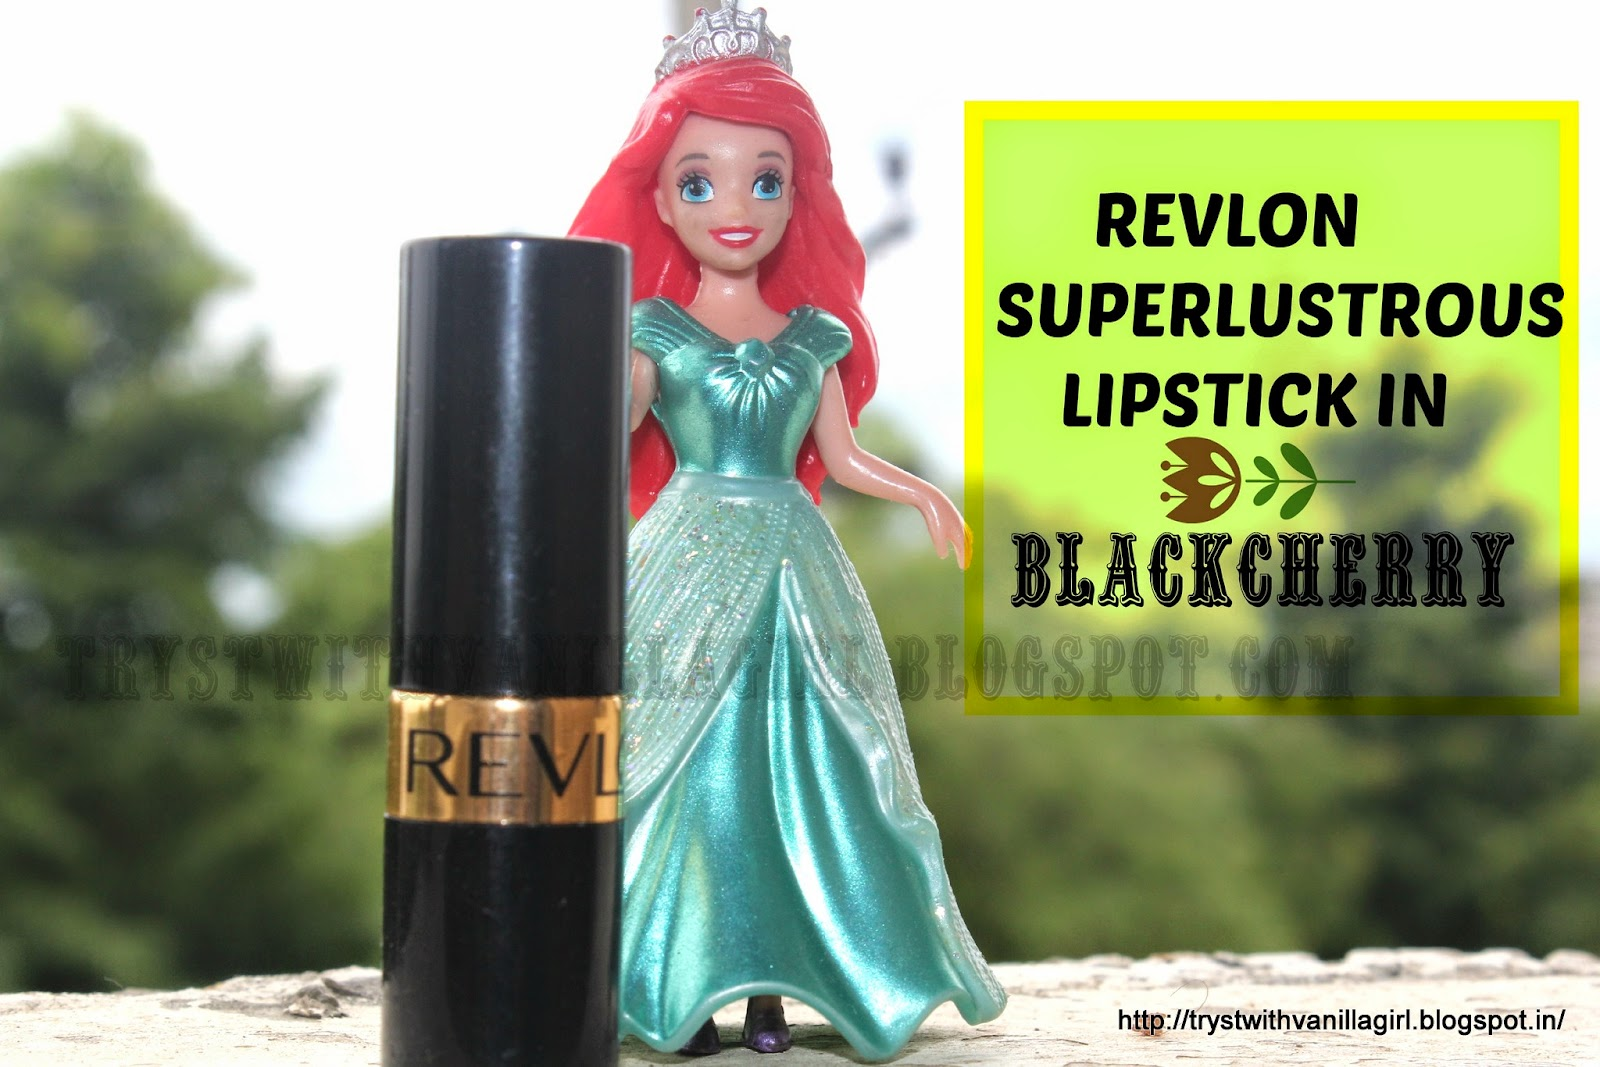 REVLON SUPERLUSTROUS LIPSTICK IN BLACKCHERRY